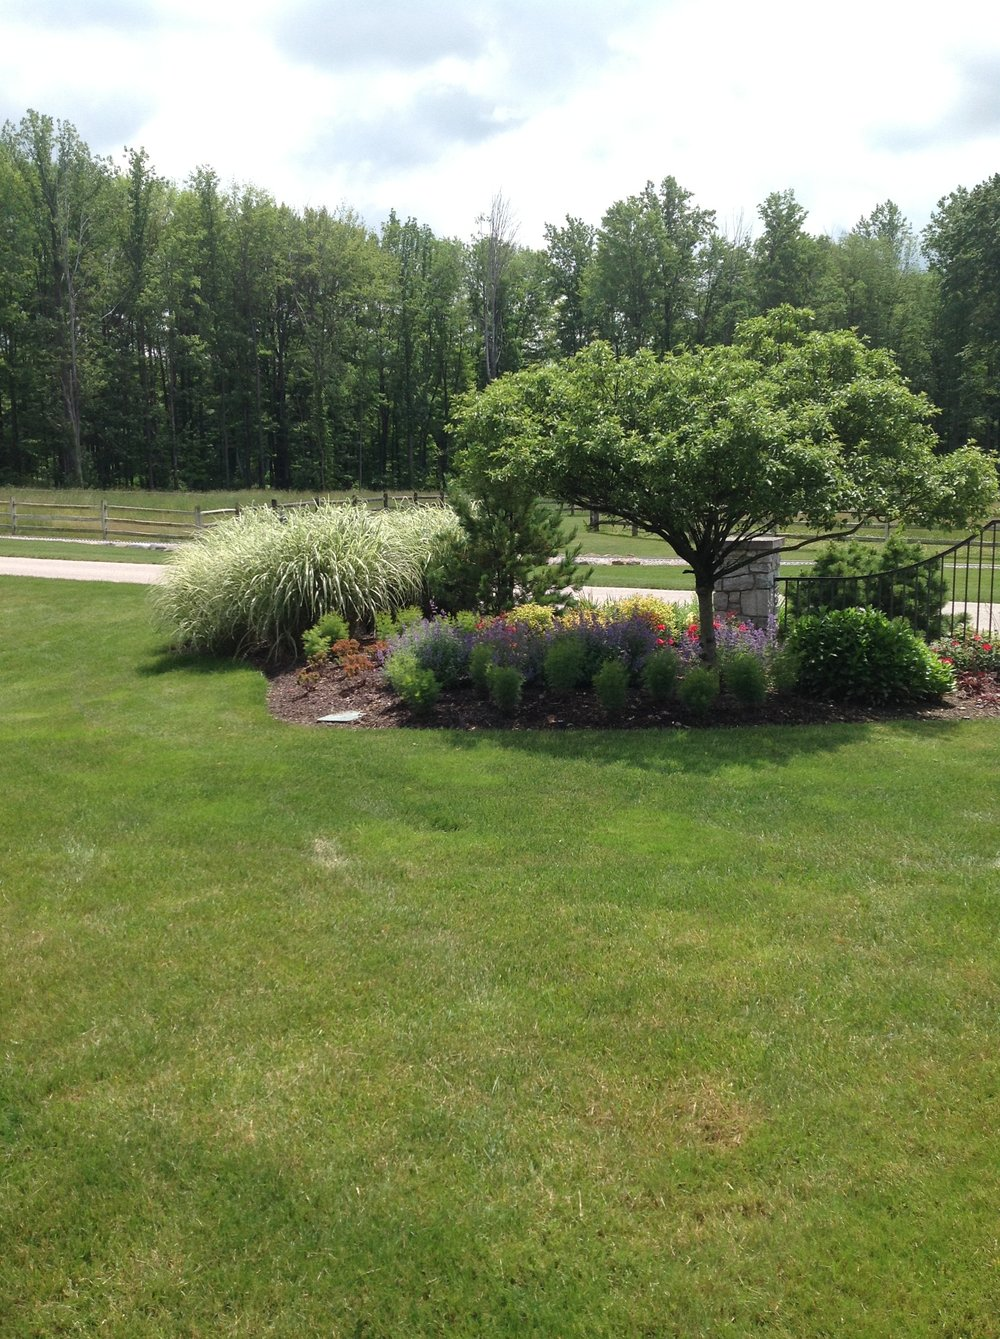 Lawn care maintenance with top lawn fertilizer in Novelty and Hudson, OH.